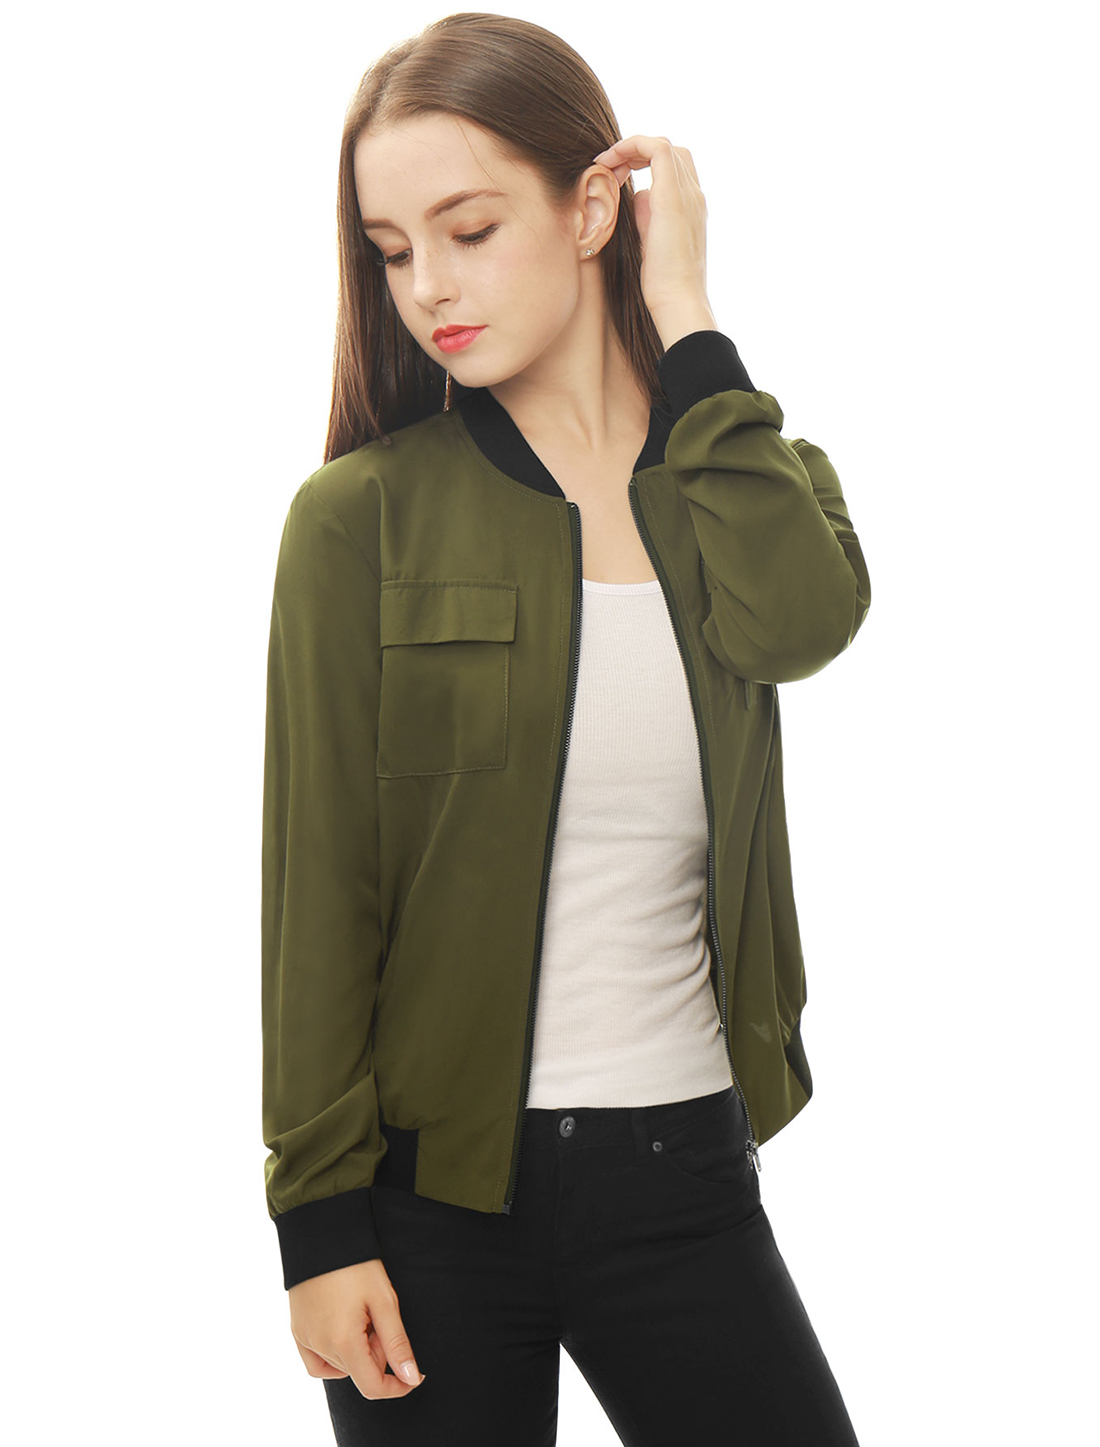 Women Multi-Pocket Zip Fastening Front Bomber Jacket Green L